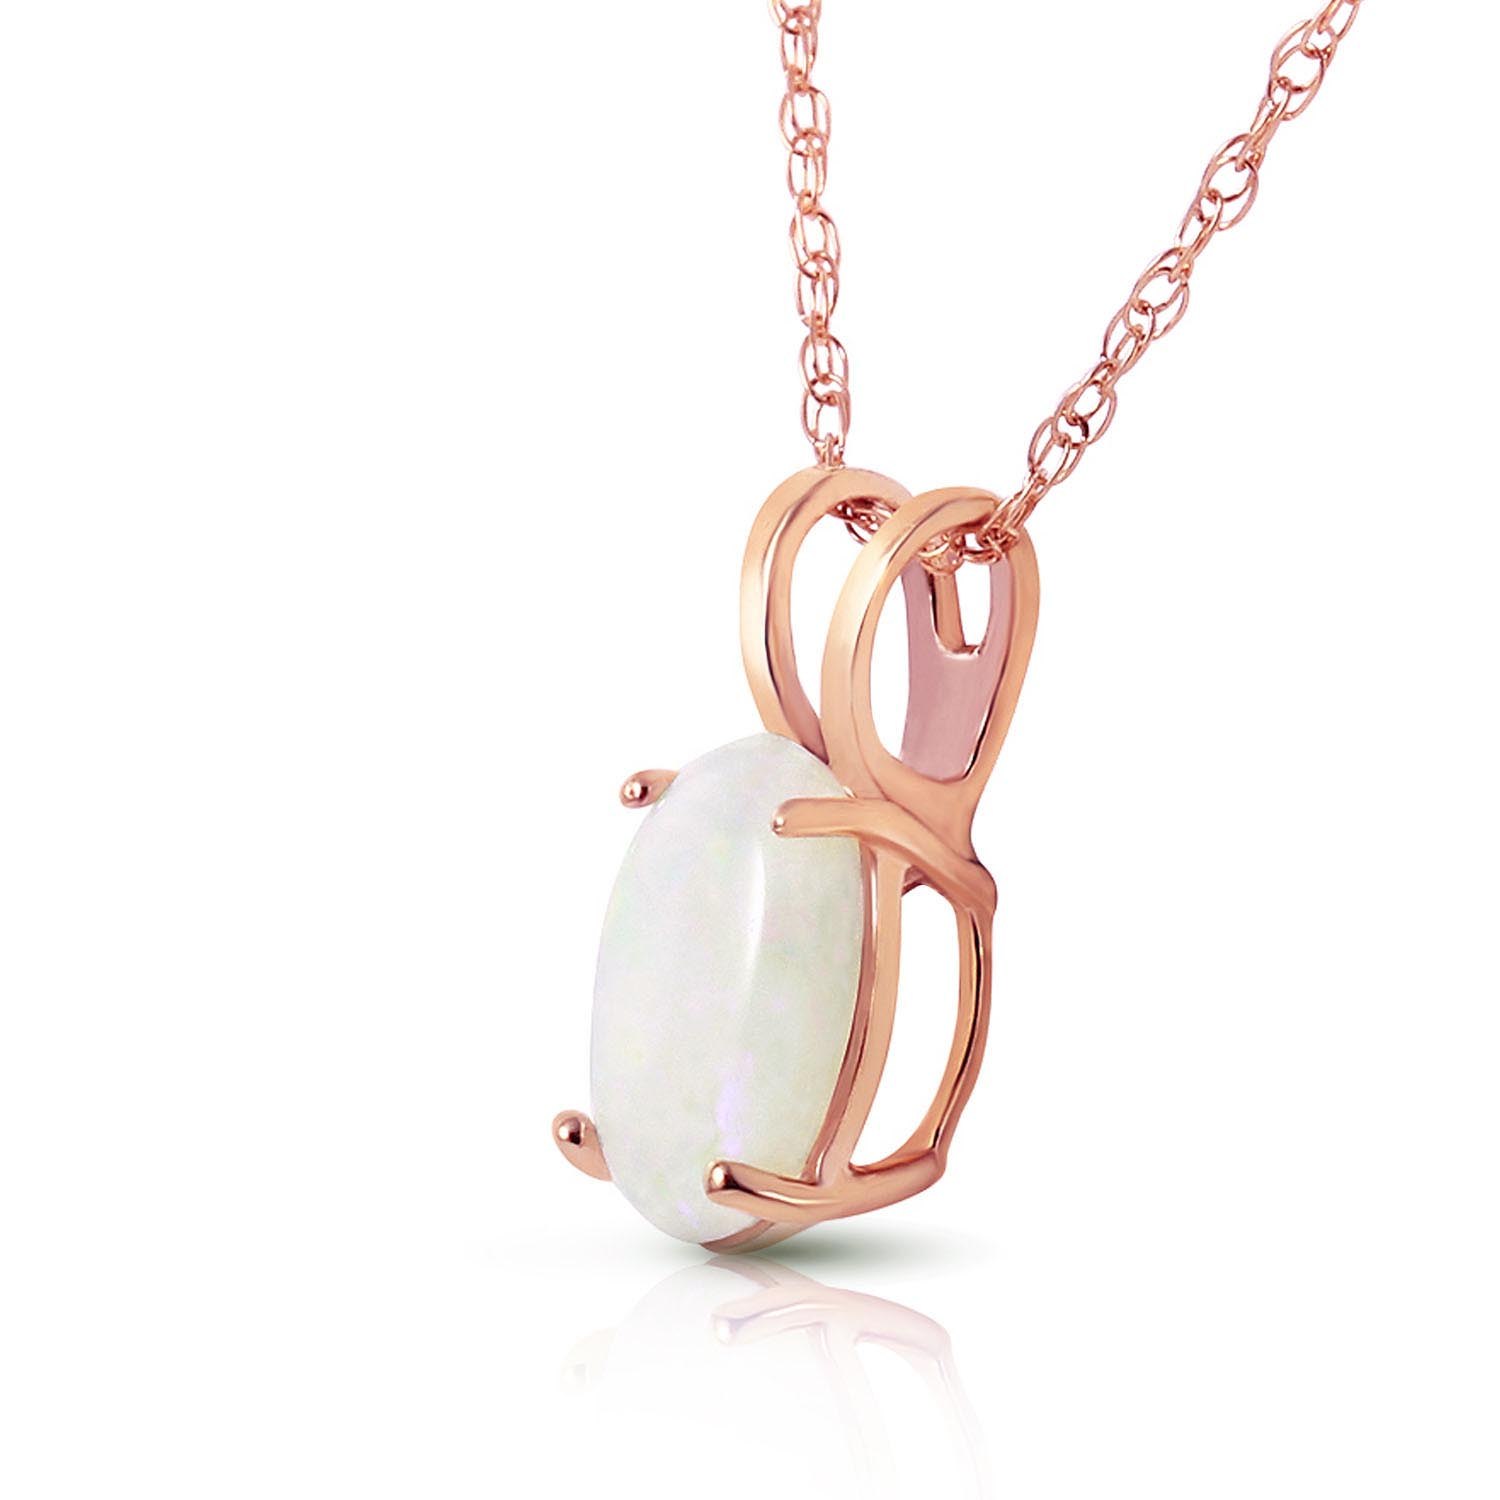 Oval Cut Opal Pendant Necklace 0.45ct in 9ct Rose Gold